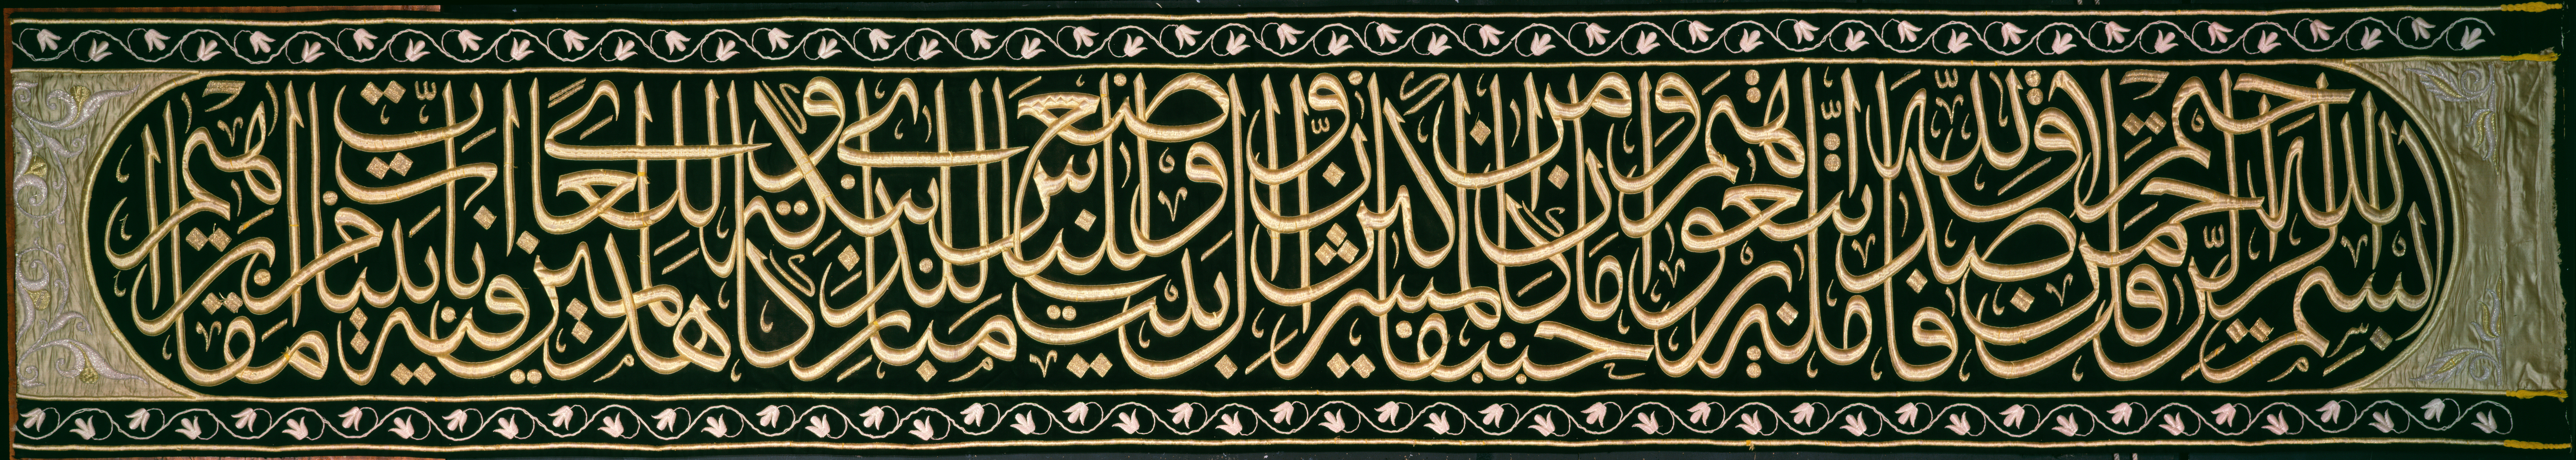 Section from the belt of the Ka'bah